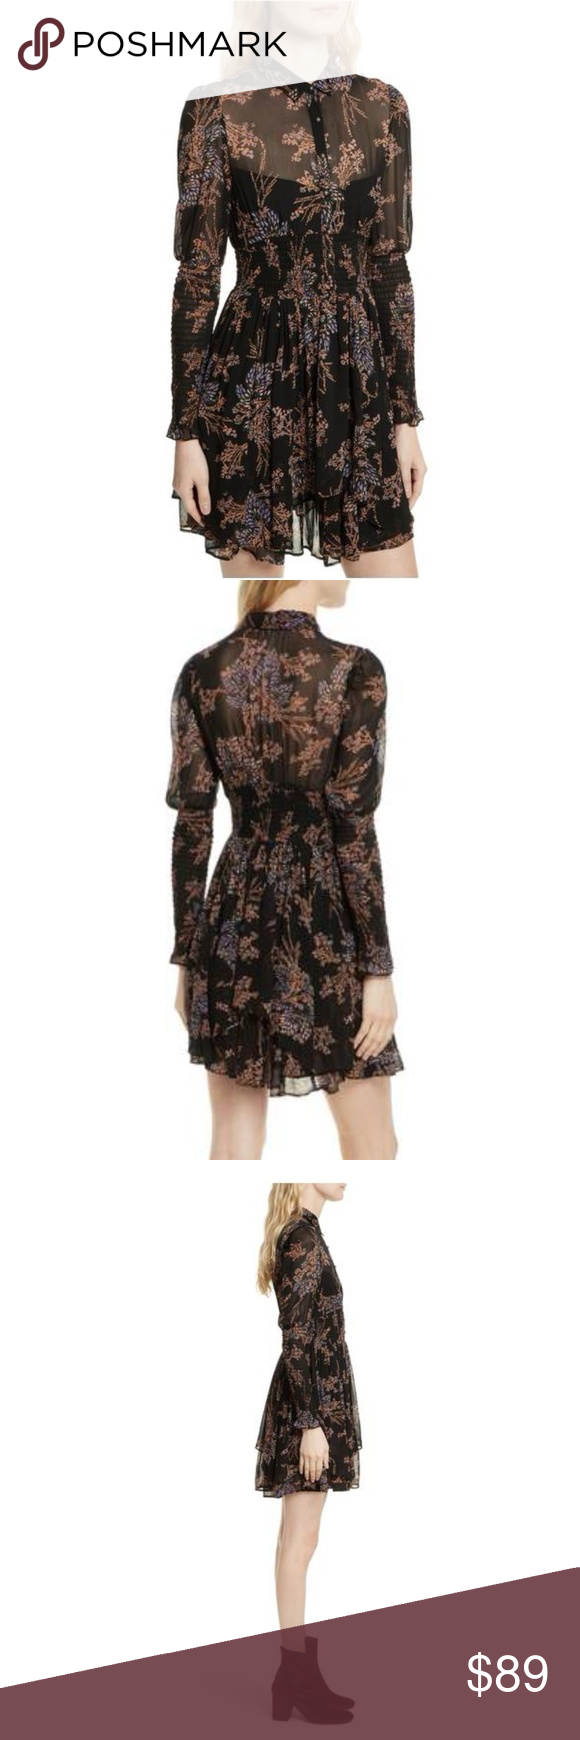 366aa661a1 Free People Baby Doll Peasant Floral Print Dress Your polished style is  only elevated with this